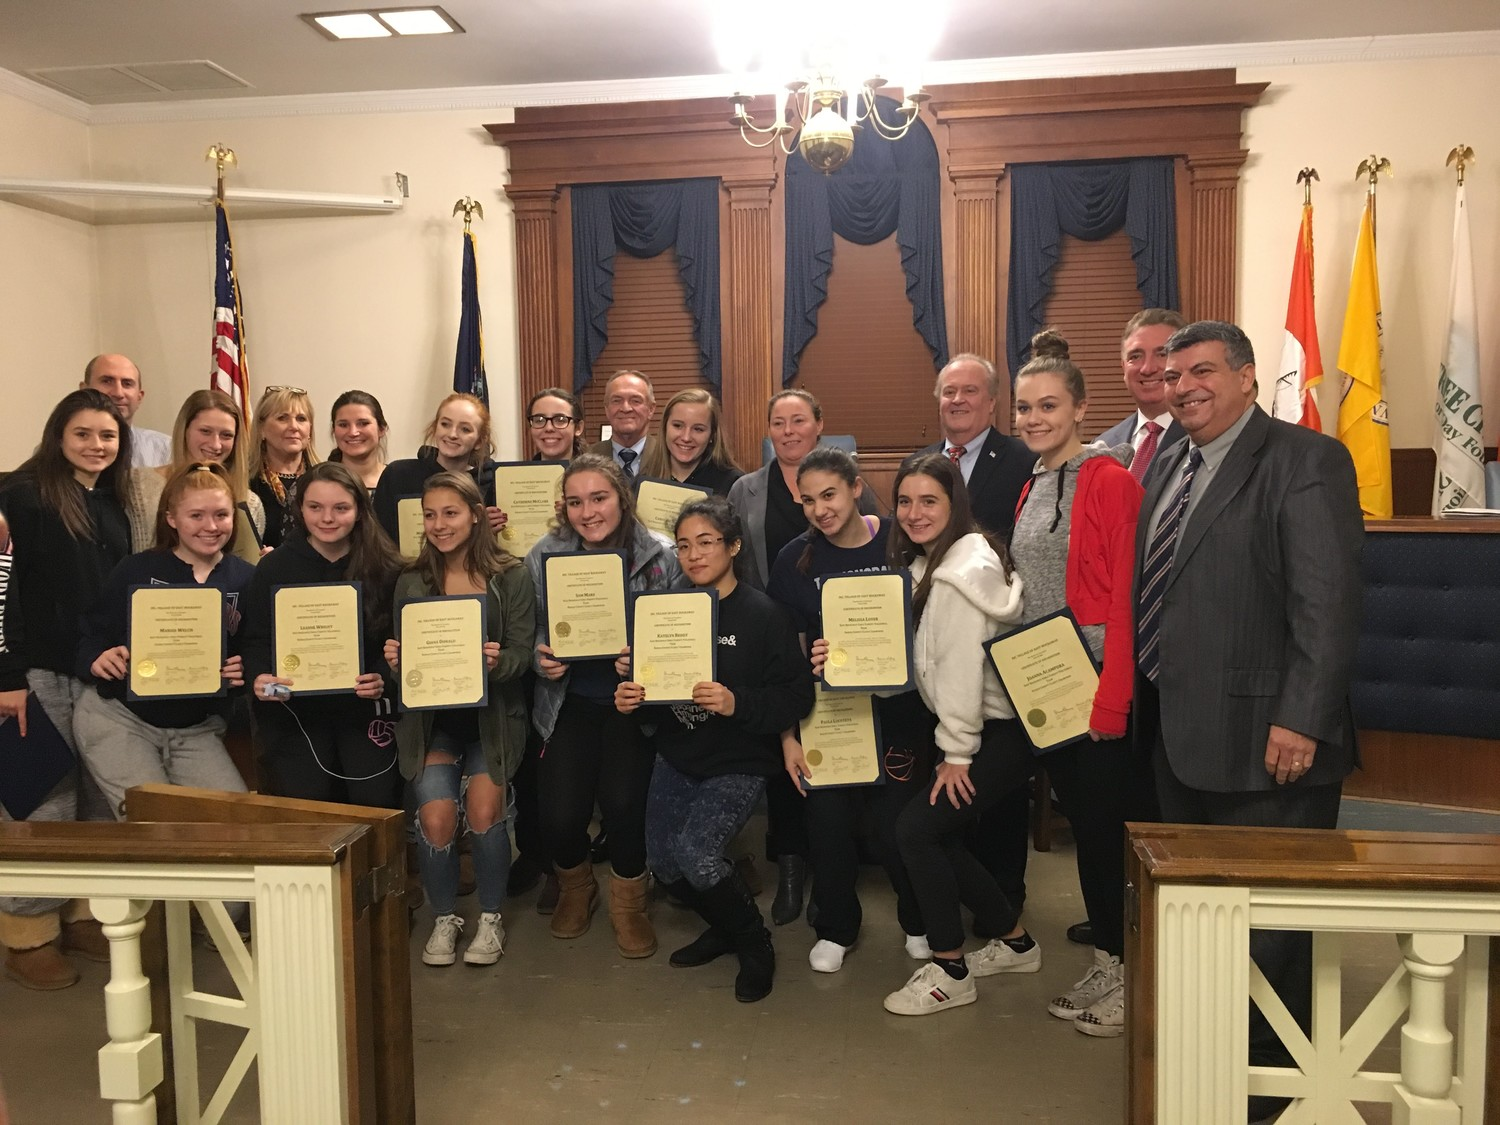 Members of the East Rockaway girls' varsity volleyball team were honored at the East Rockaway board of trustees meeting last month.